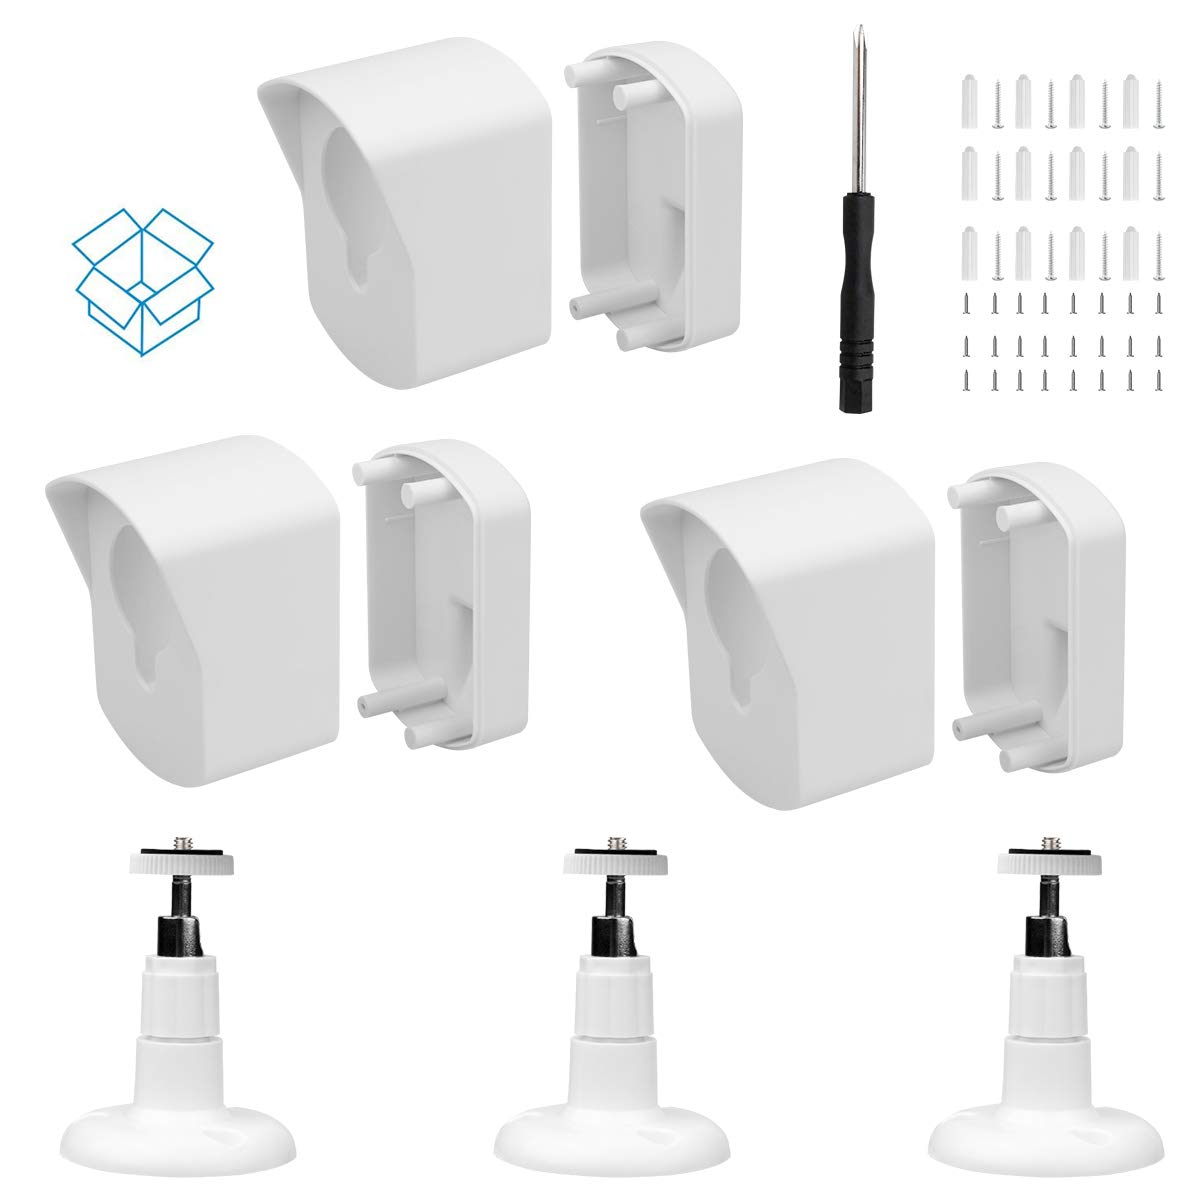 Black 1 Pack Wyze Cam Wall Mount Bracket,Full Protective Weather Proof 360 Degree Adjustable Outdoor Indoor Mount and Cover Case for Wyze Cam 1080p HD Camera